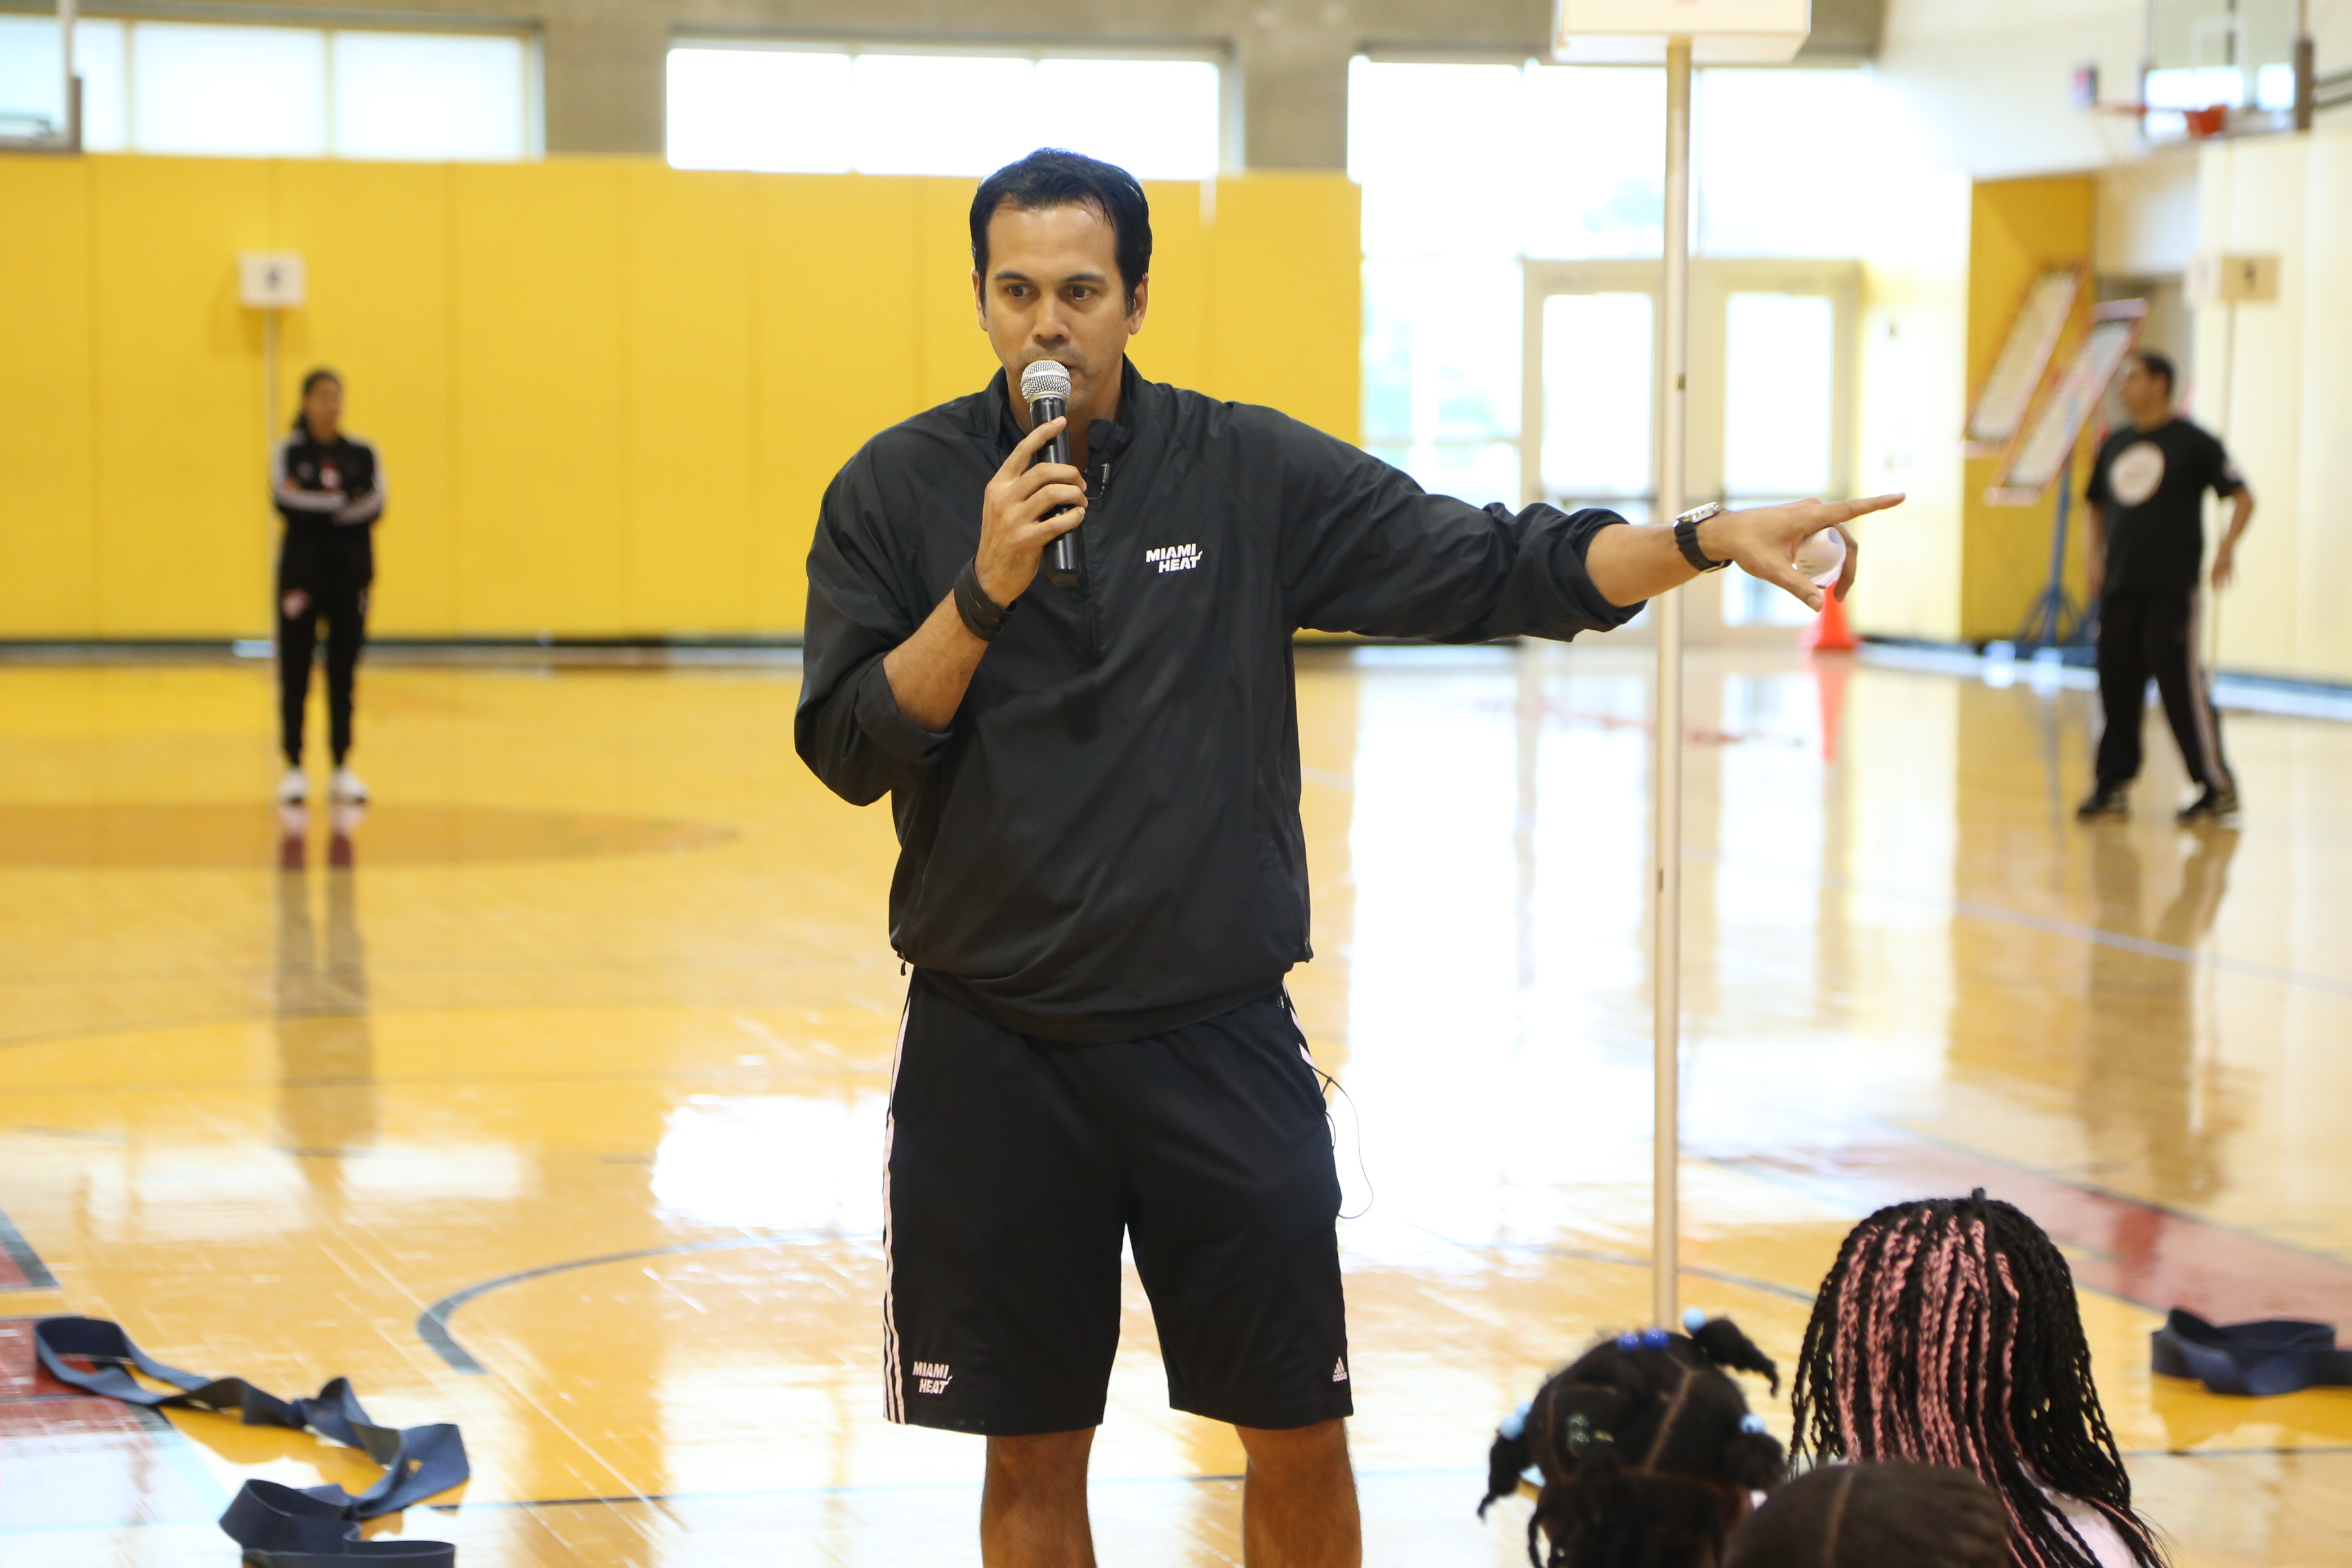 Coach Spo spends the afternoon training a few younger athletes in Tuesday's NBA Fit Youth Fitness Clinic with students from the Miami HEAT Academy, presented by Baptist Health South Florida, Florida Blue & Gatorade